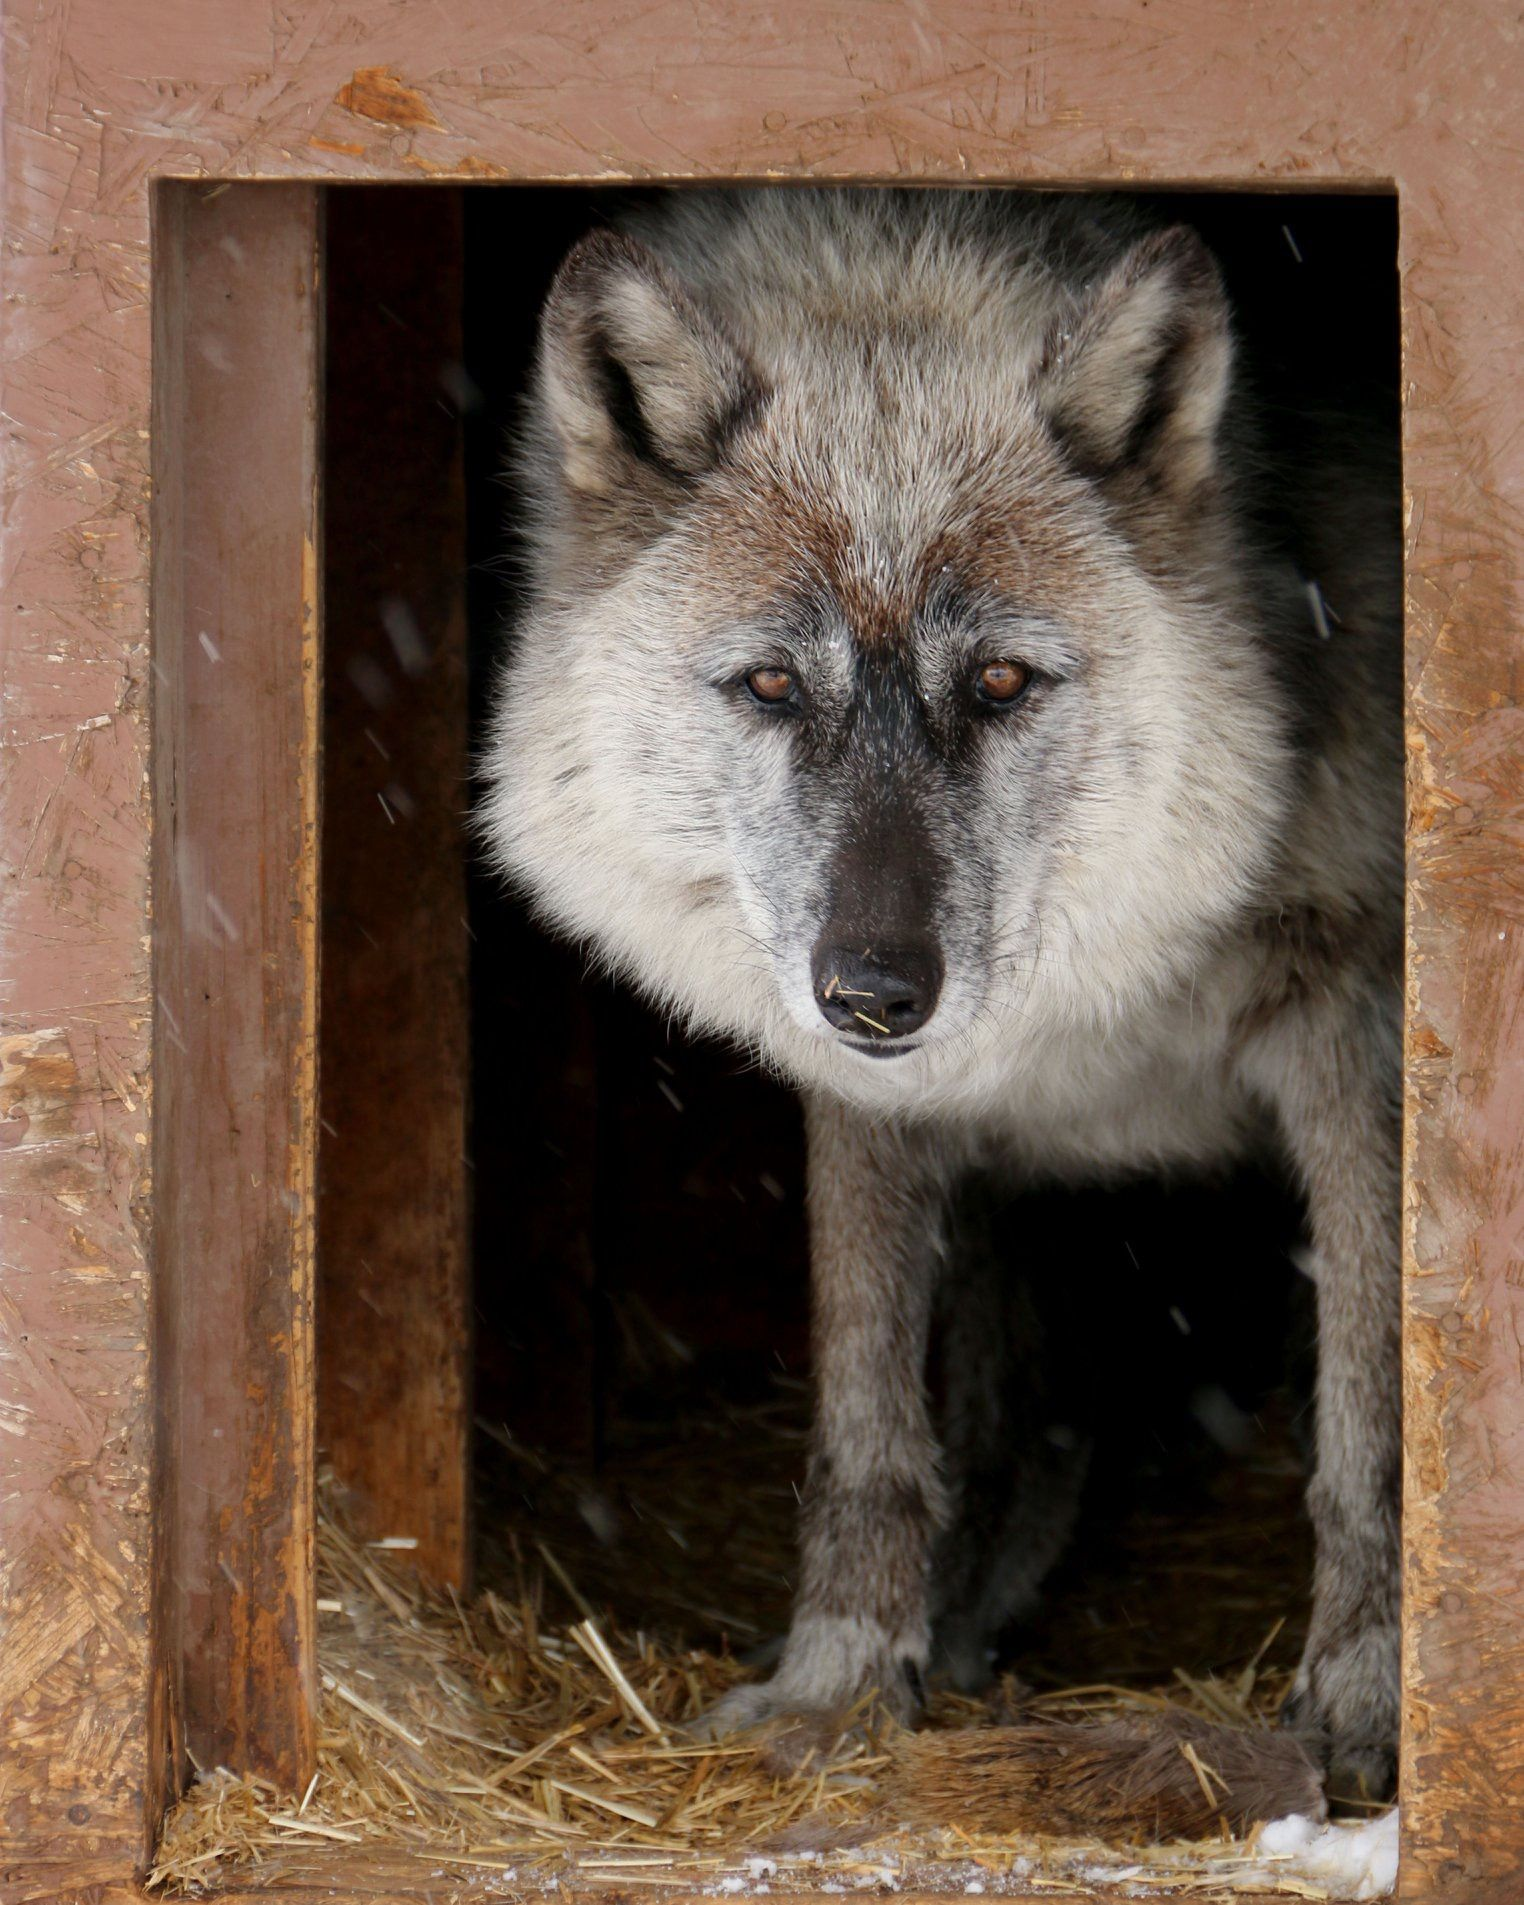 Cherokee RockyMountainWildlife Foundation photo by Kim